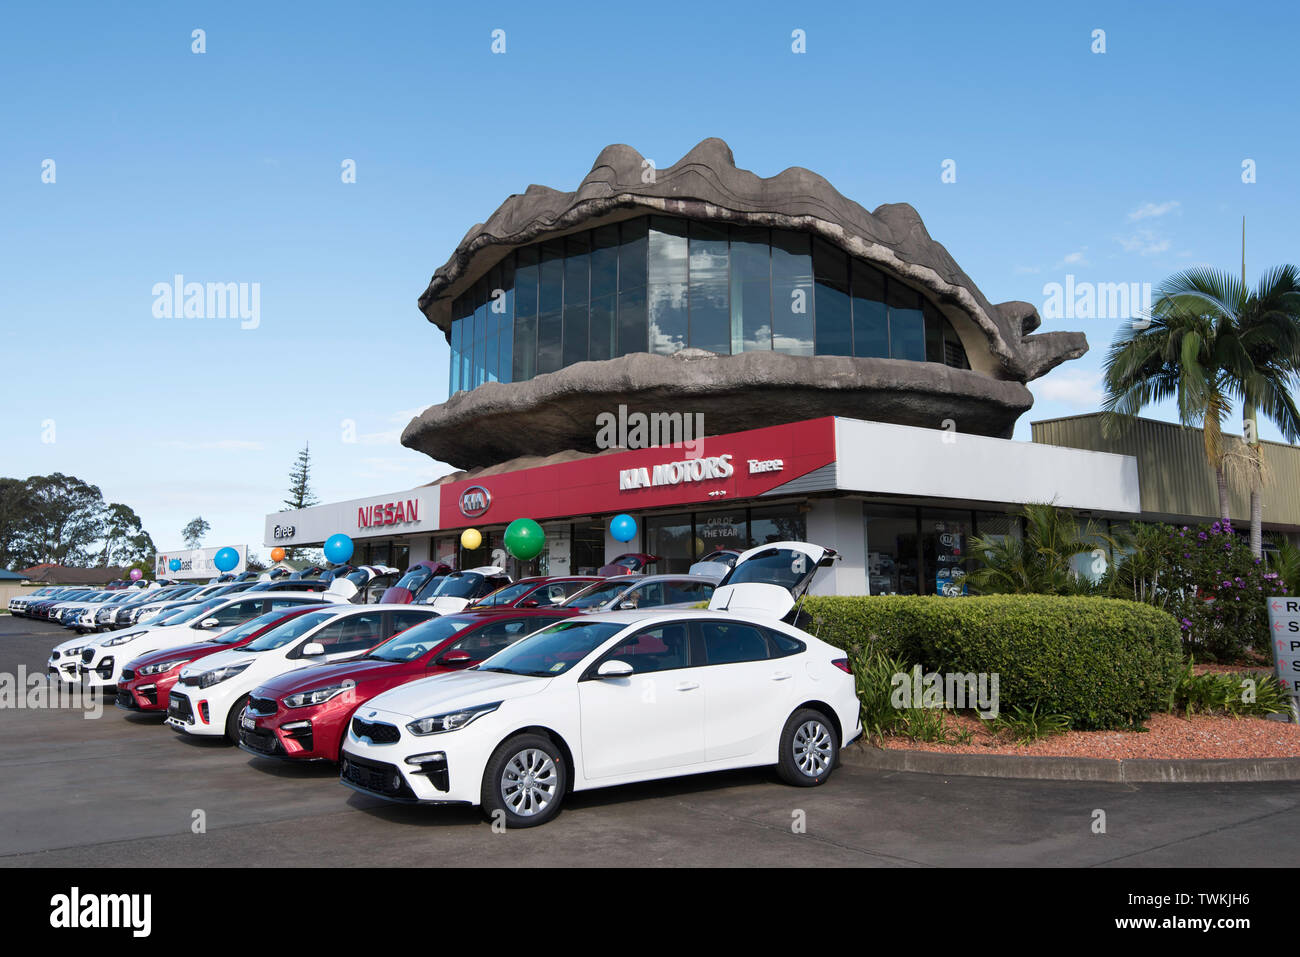 One of the growing list of Big Things in regional towns around Australia, this is the Big Oyster mounted on top of a car dealership in Taree NSW - Stock Image